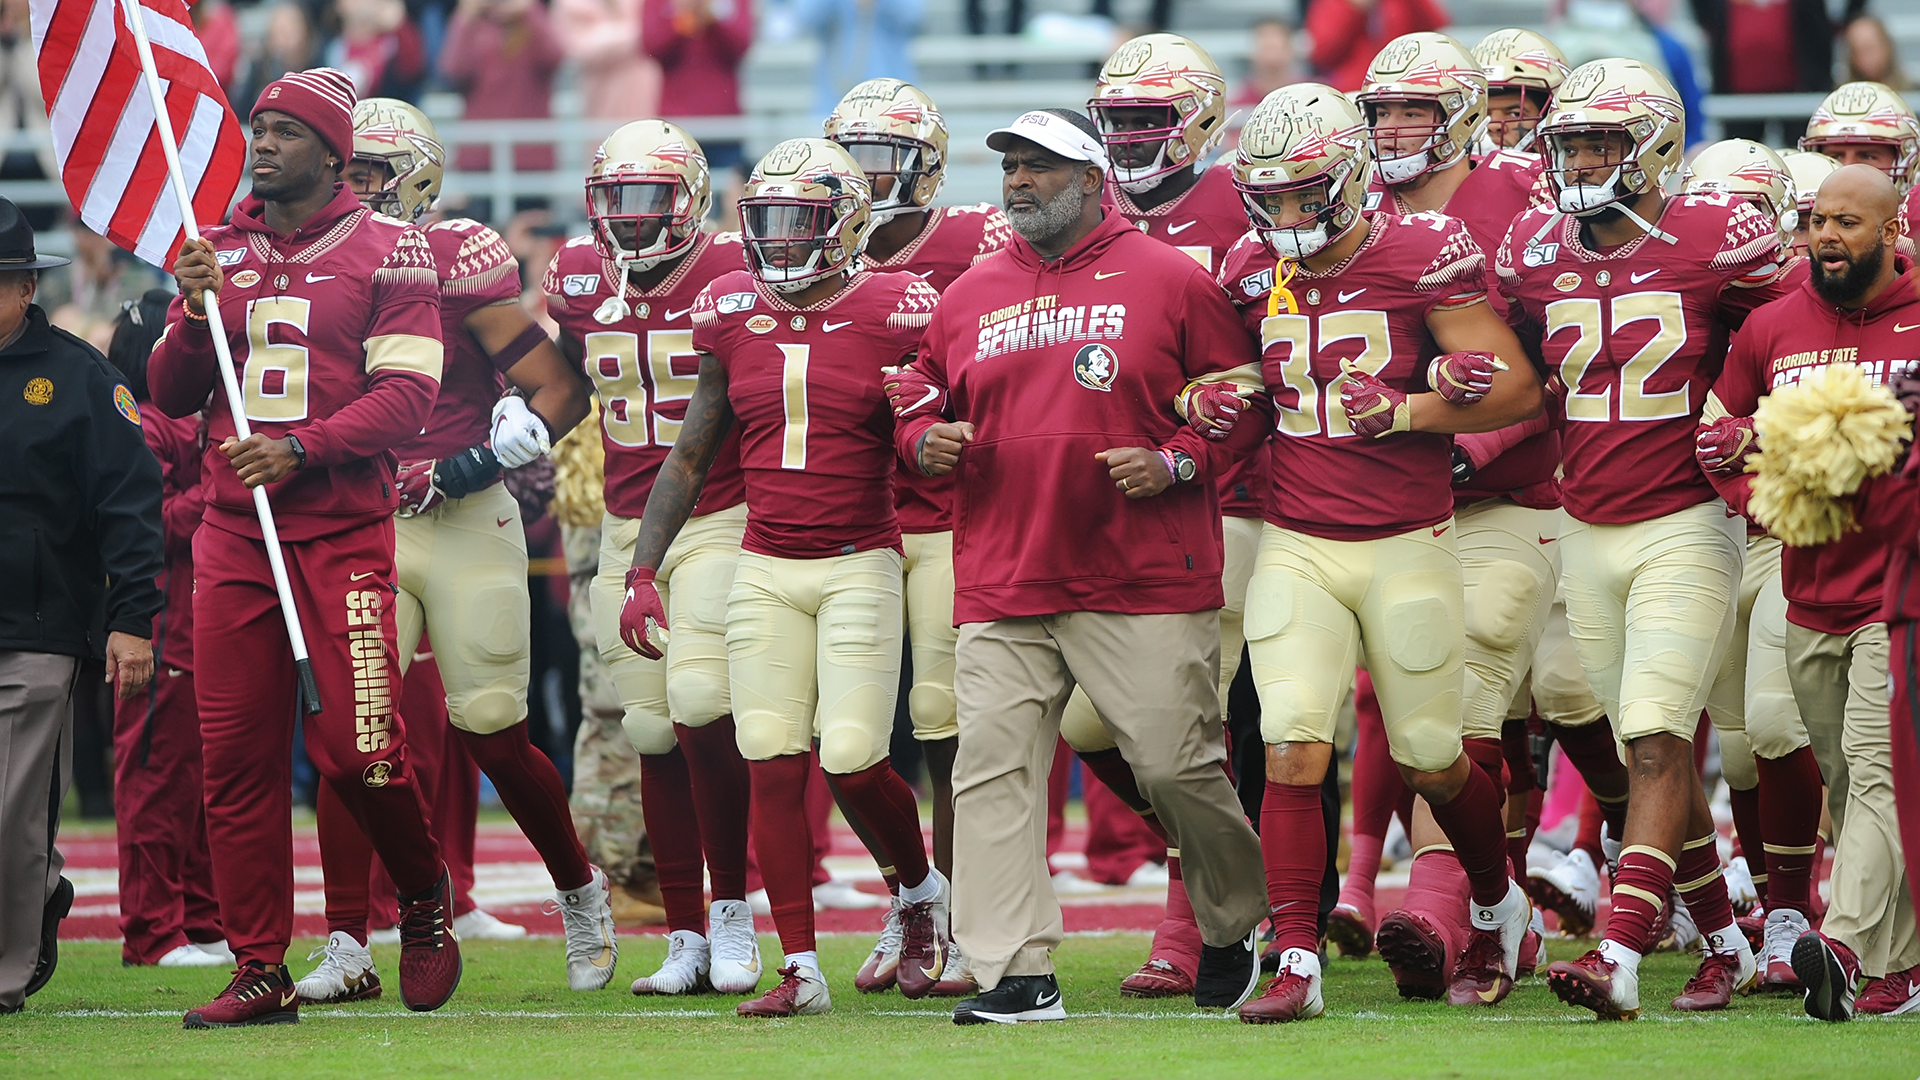 Football Round-Up: Noles Focusing On Florida More Than Coaching Search